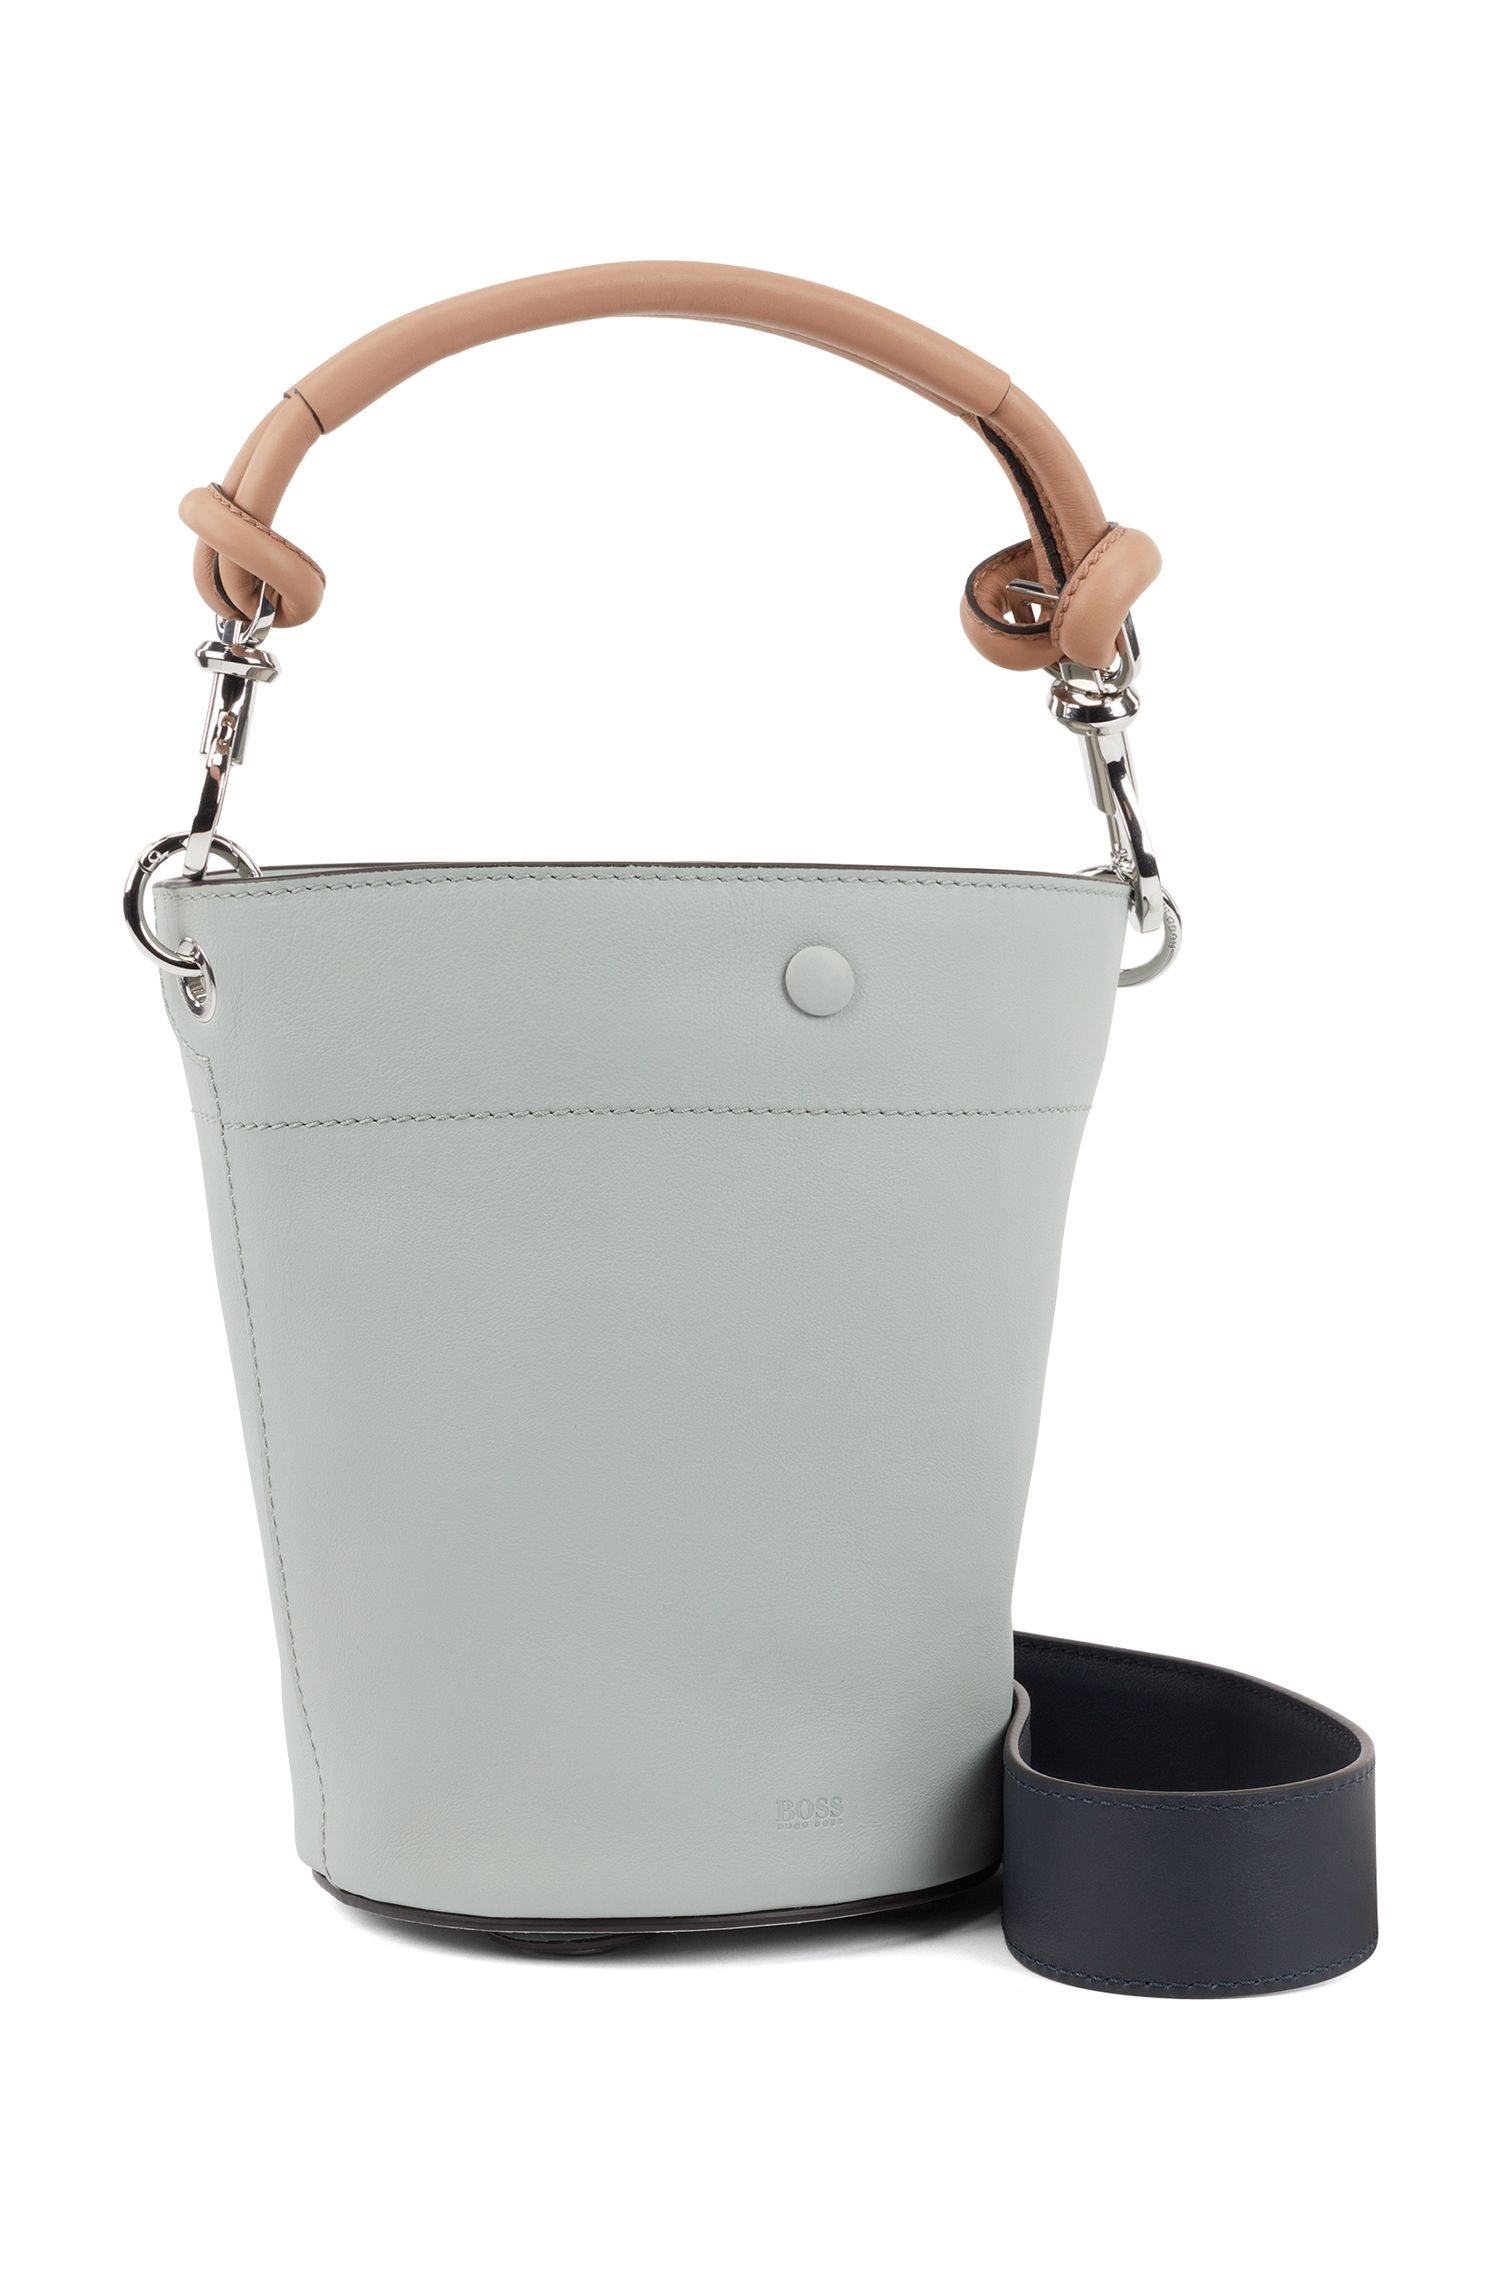 Small bucket bag in calf leather with knotted strap, Celeste